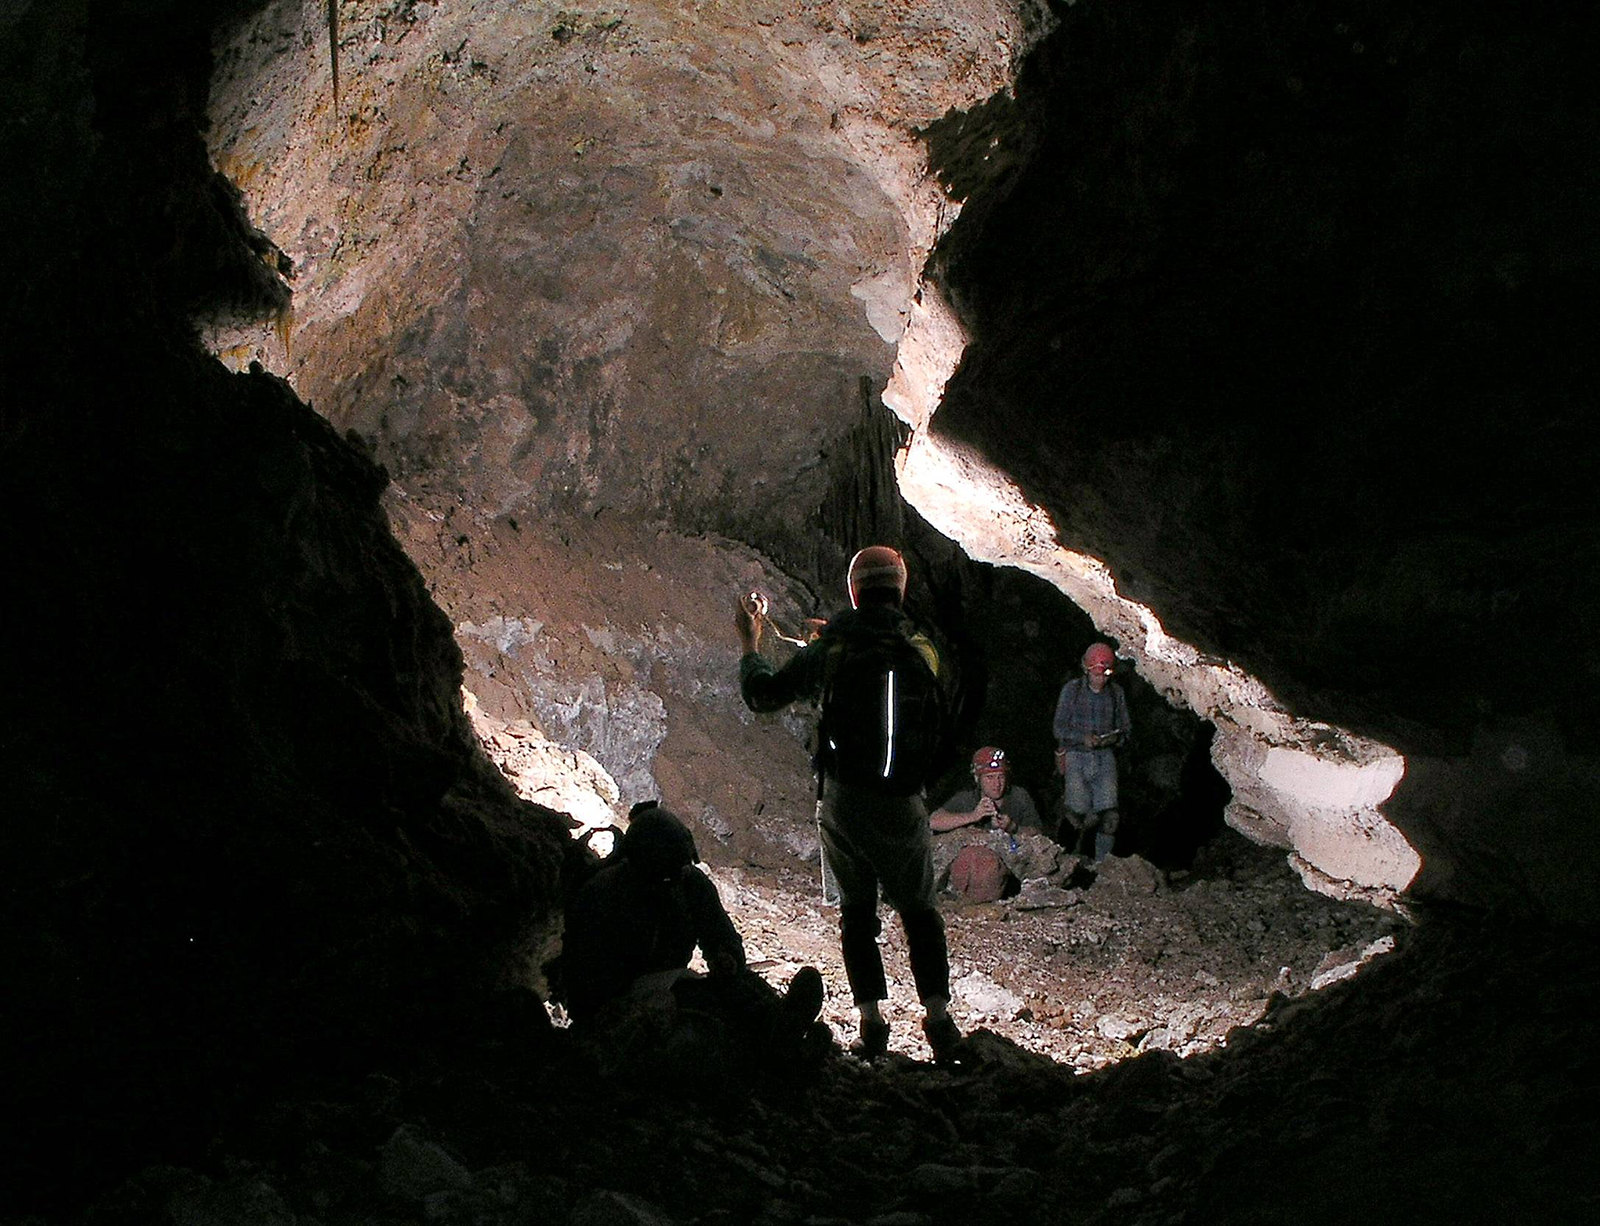 Fort Stanton-Snowy River Cave NCA